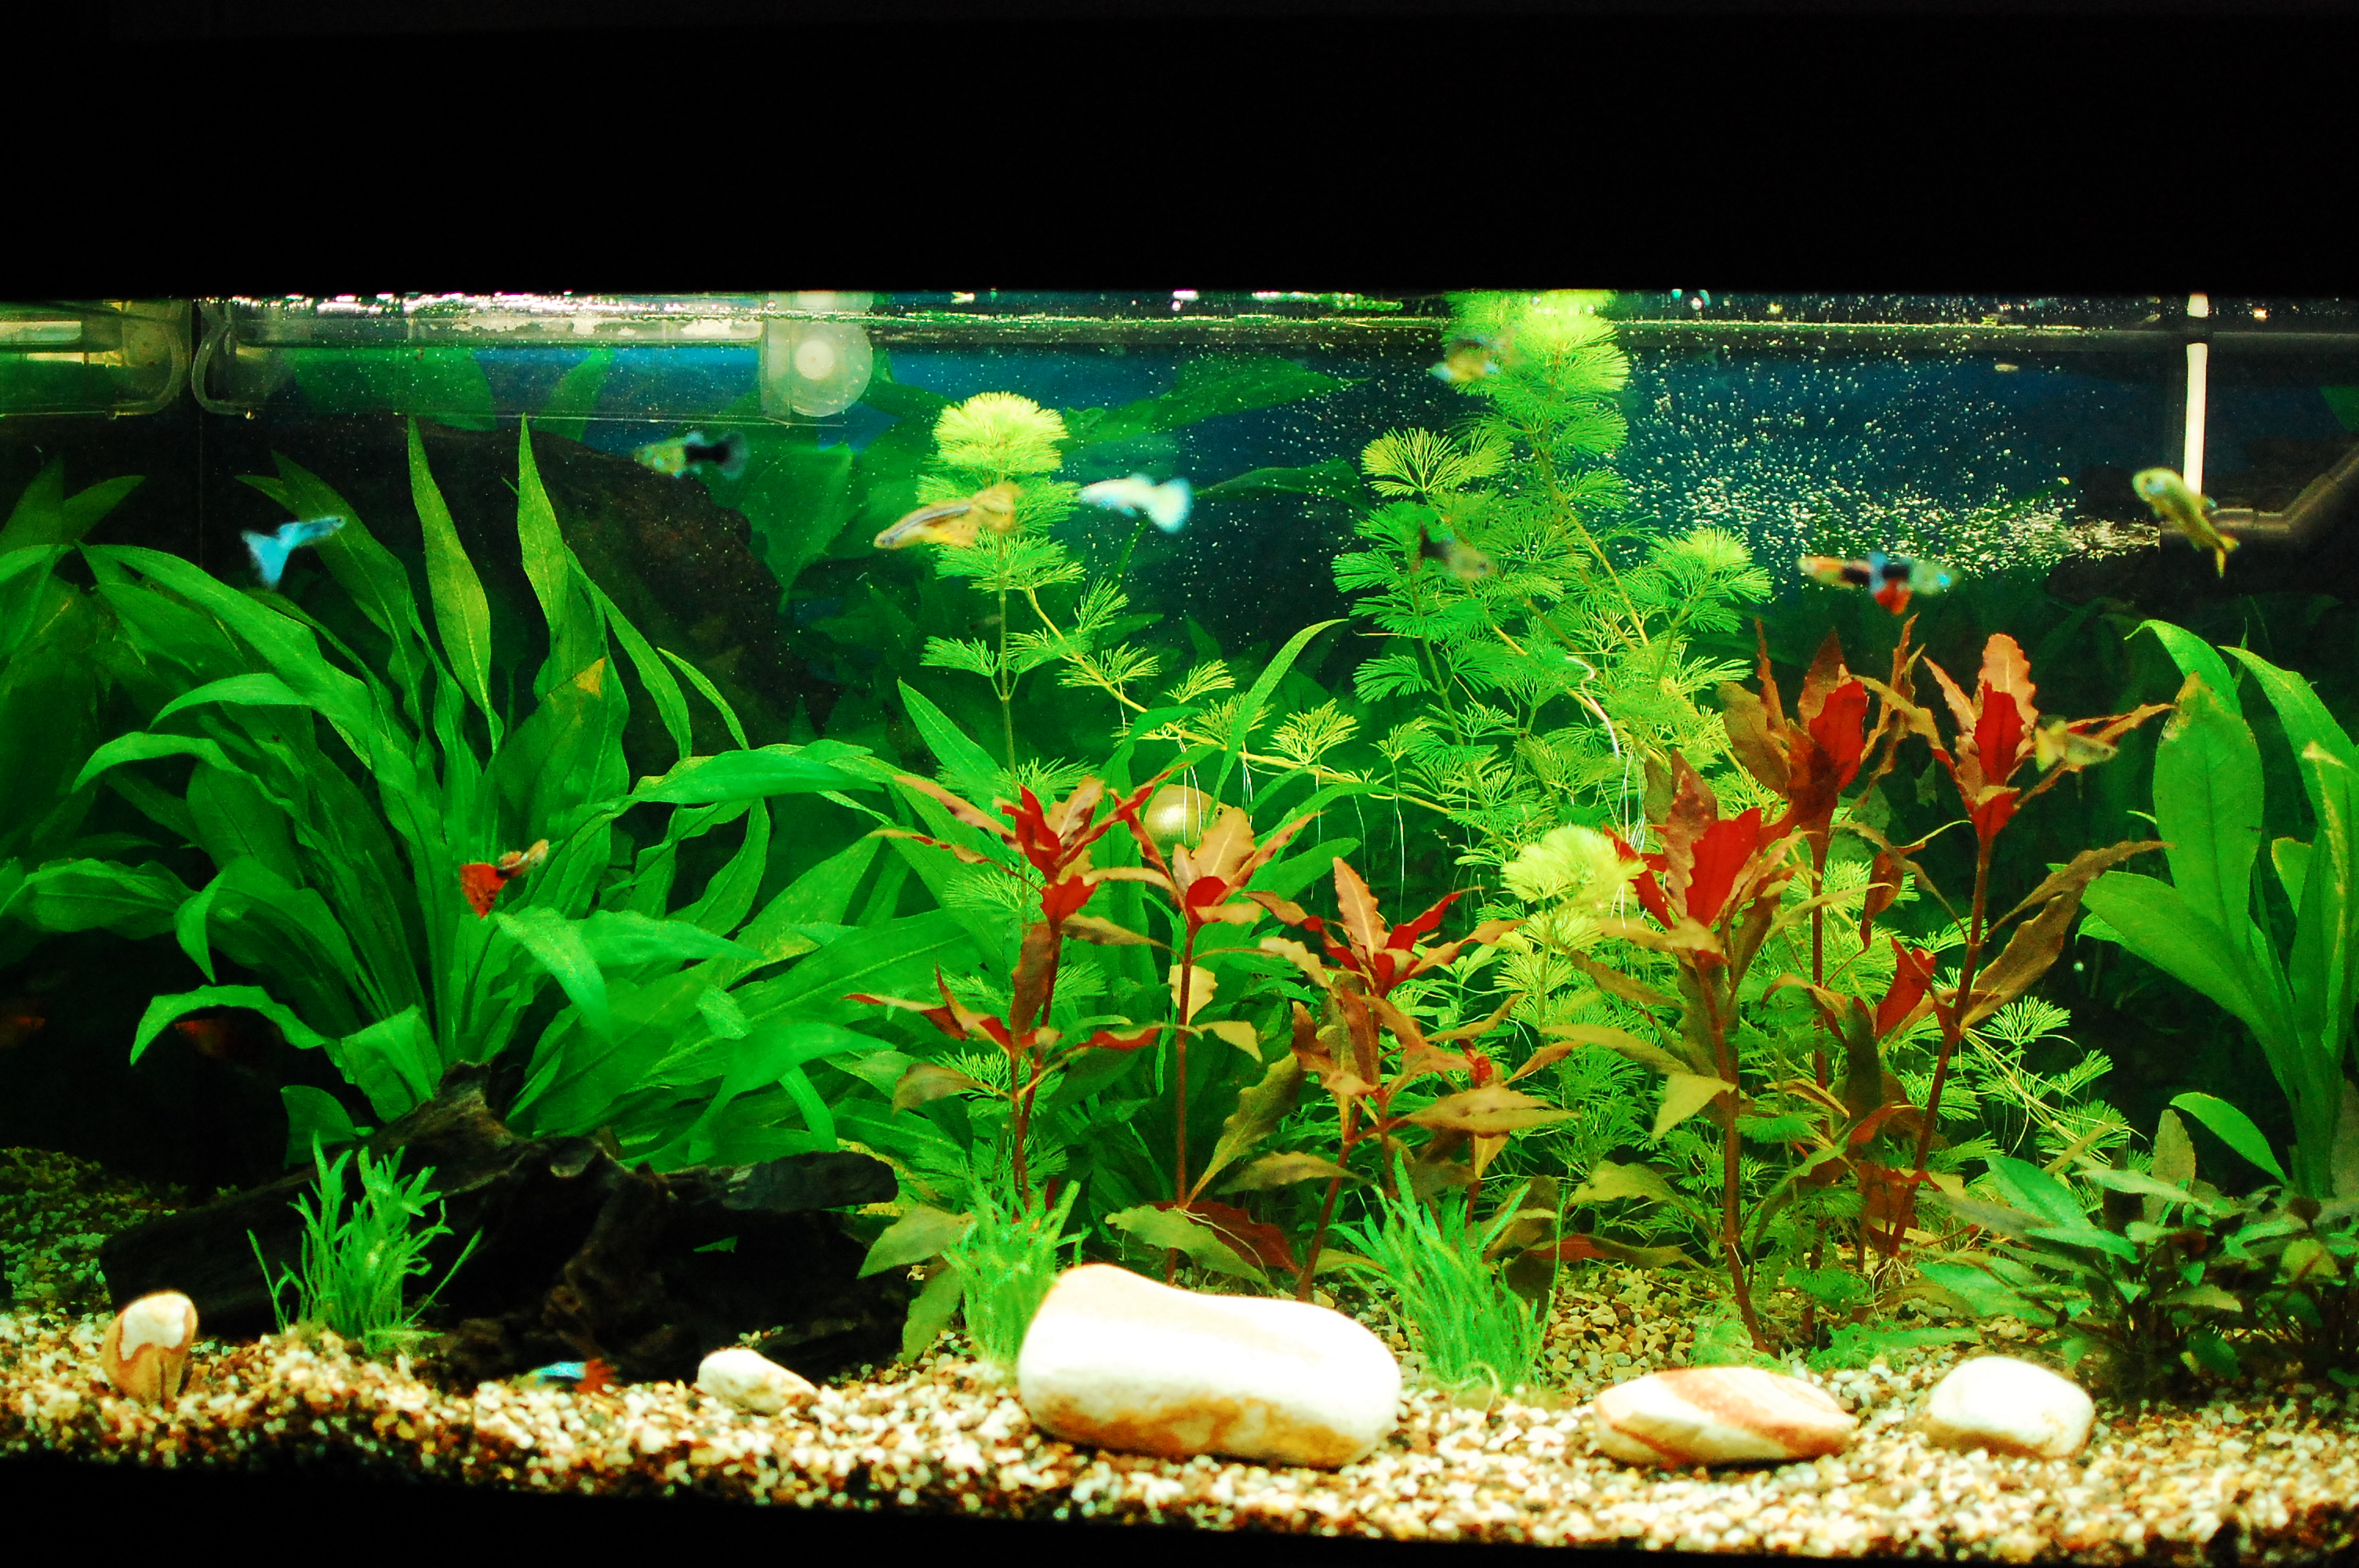 Fish aquarium with plants - Freshwater Aquarium With Good Plant Growth And Happy Guppies